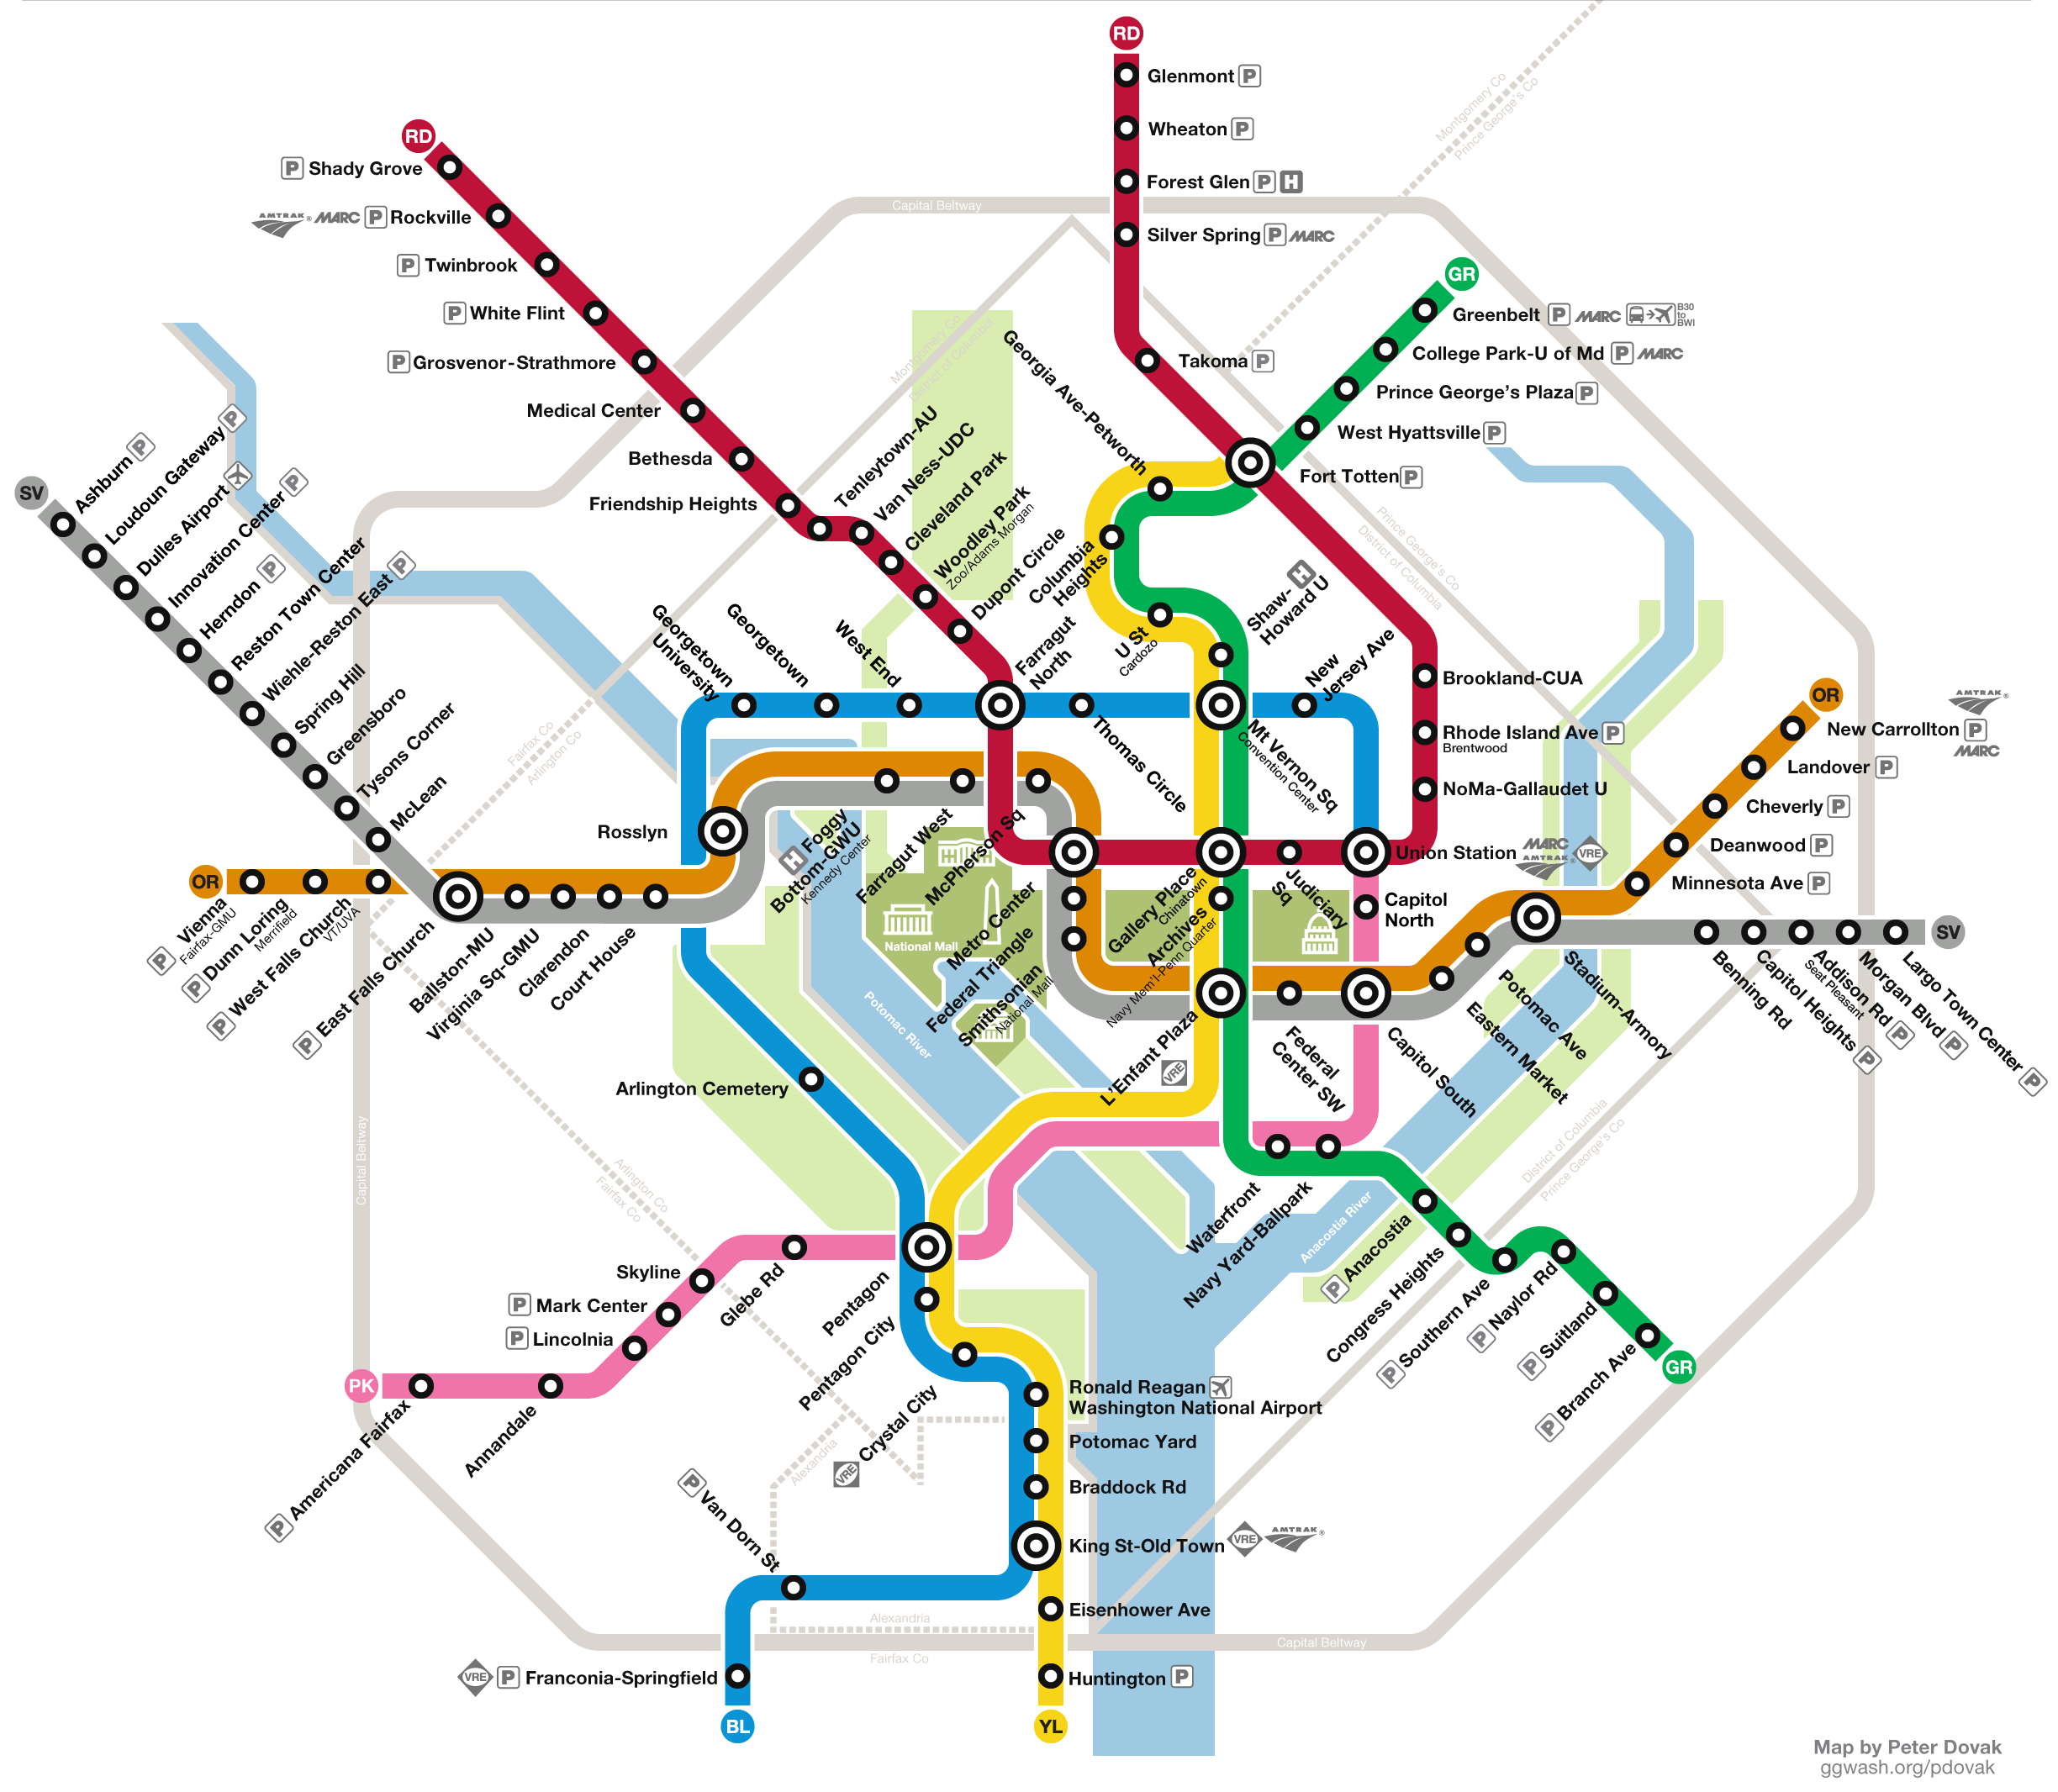 Dc Subway Map Pillow.Conceptual Wmata Map By Peter Dovak Expanded Dc Metro System With